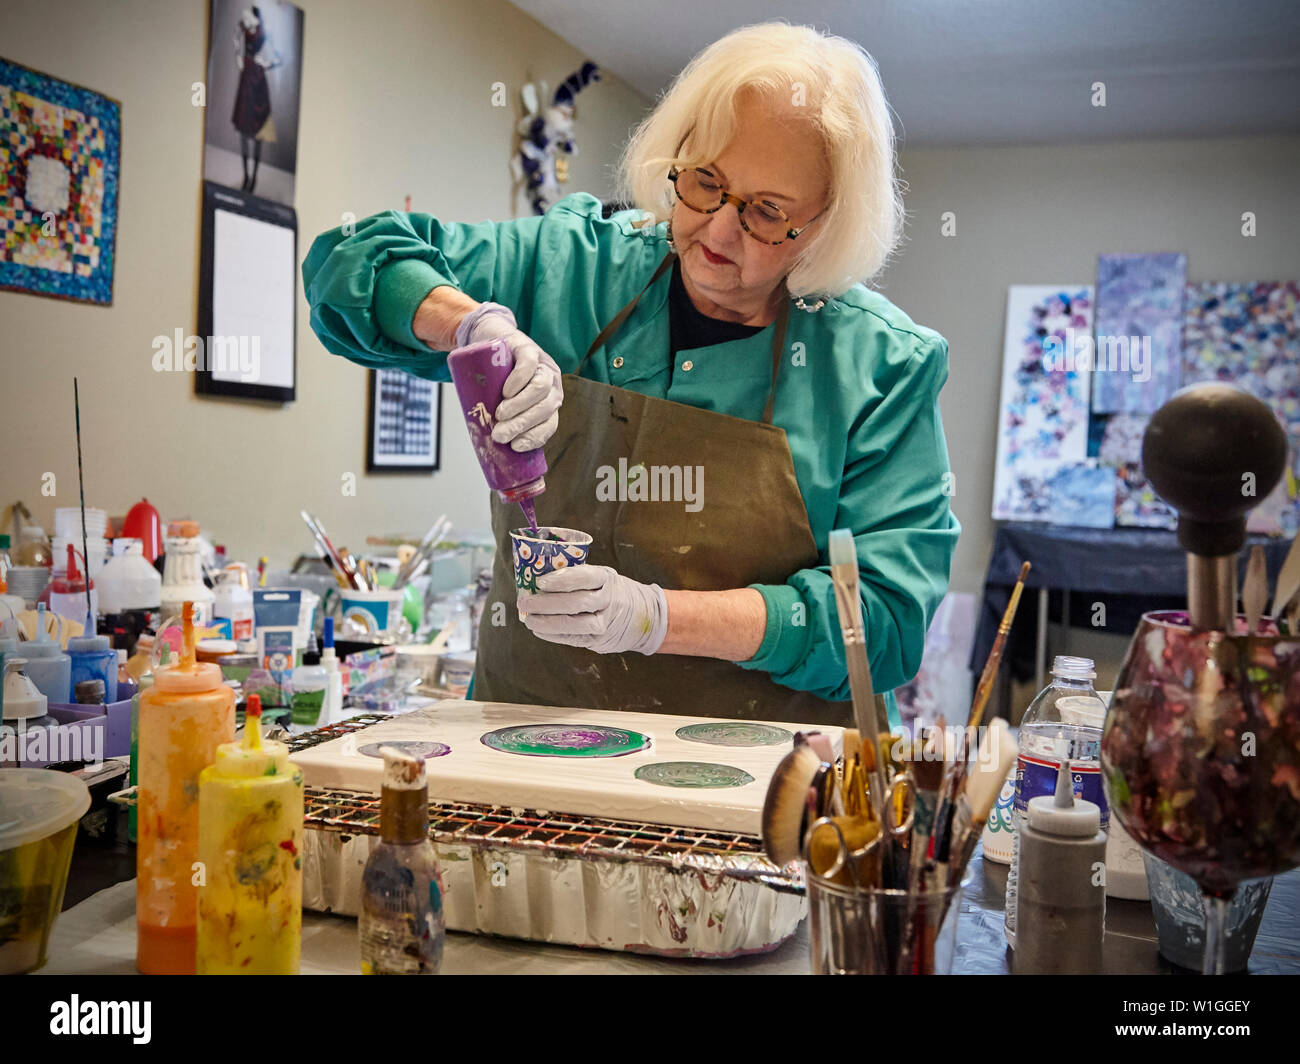 retired lady creating art in a home studio Stock Photo